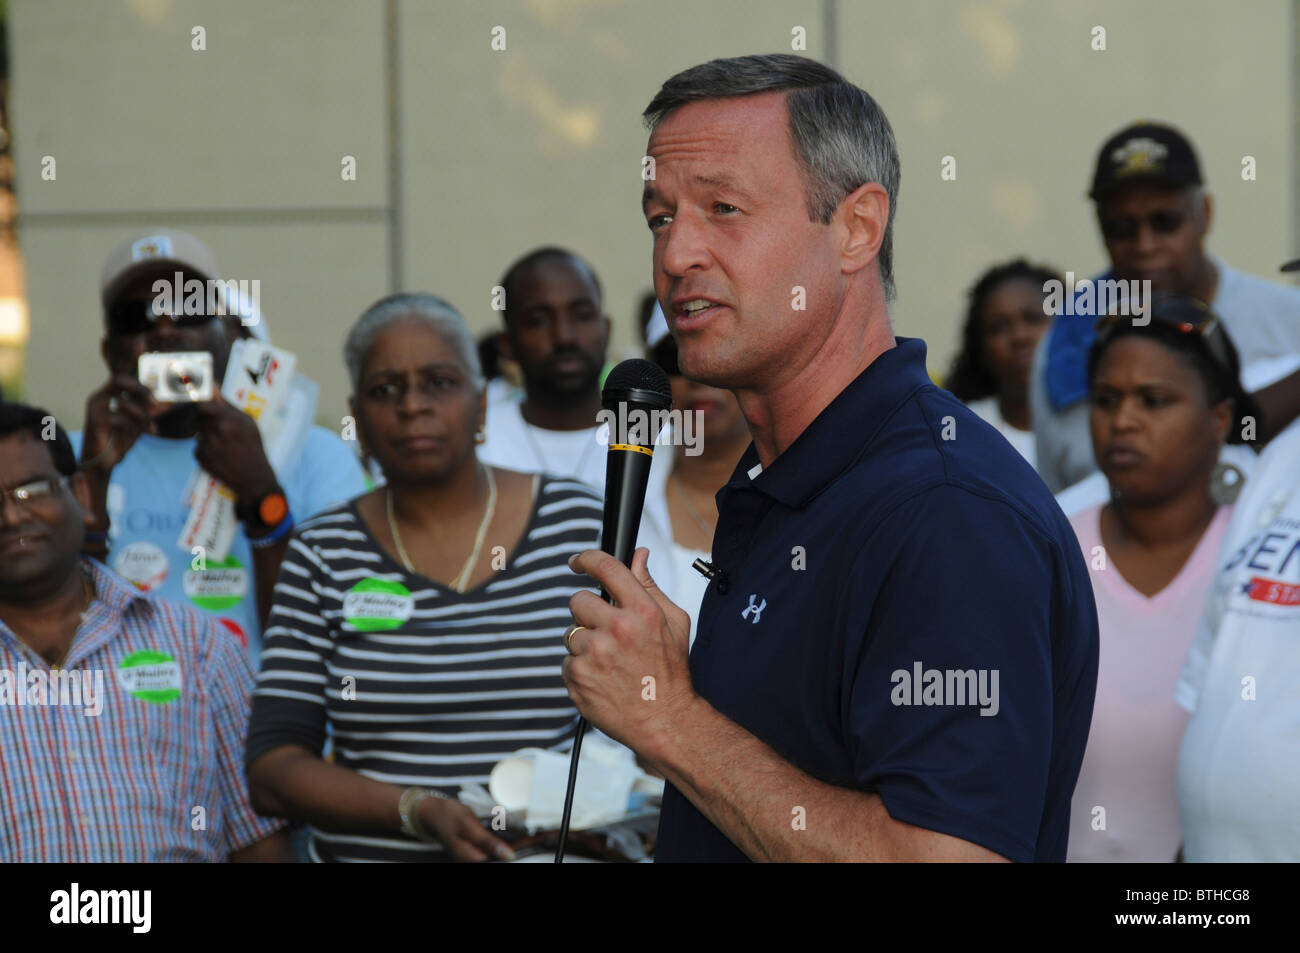 Governor Martin O'Malley of Maryland addresses a crowd of supporters in Largo, Maryland - Stock Image